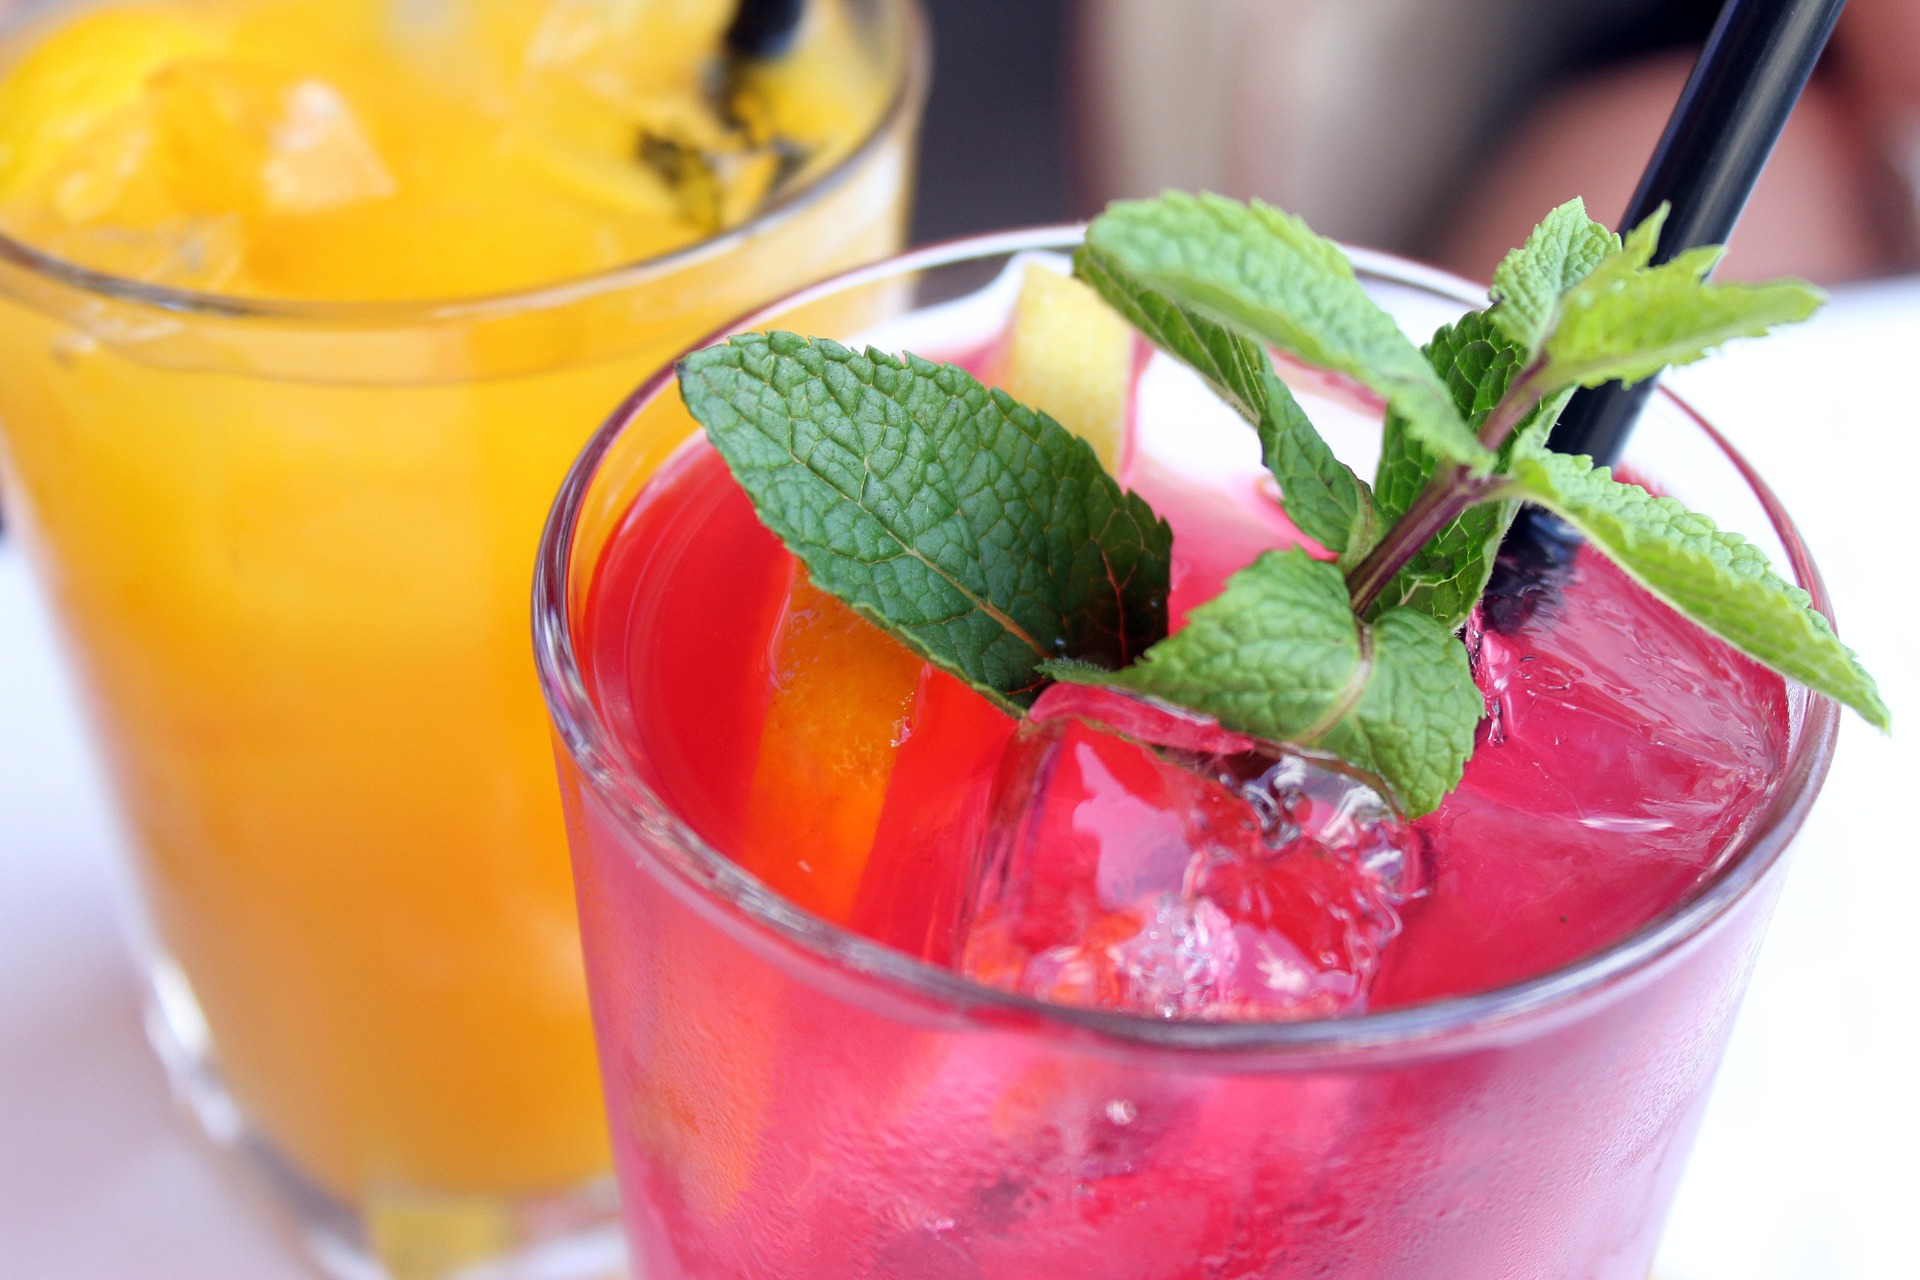 Fresh mint in a summer drink | Stock image, St. George News